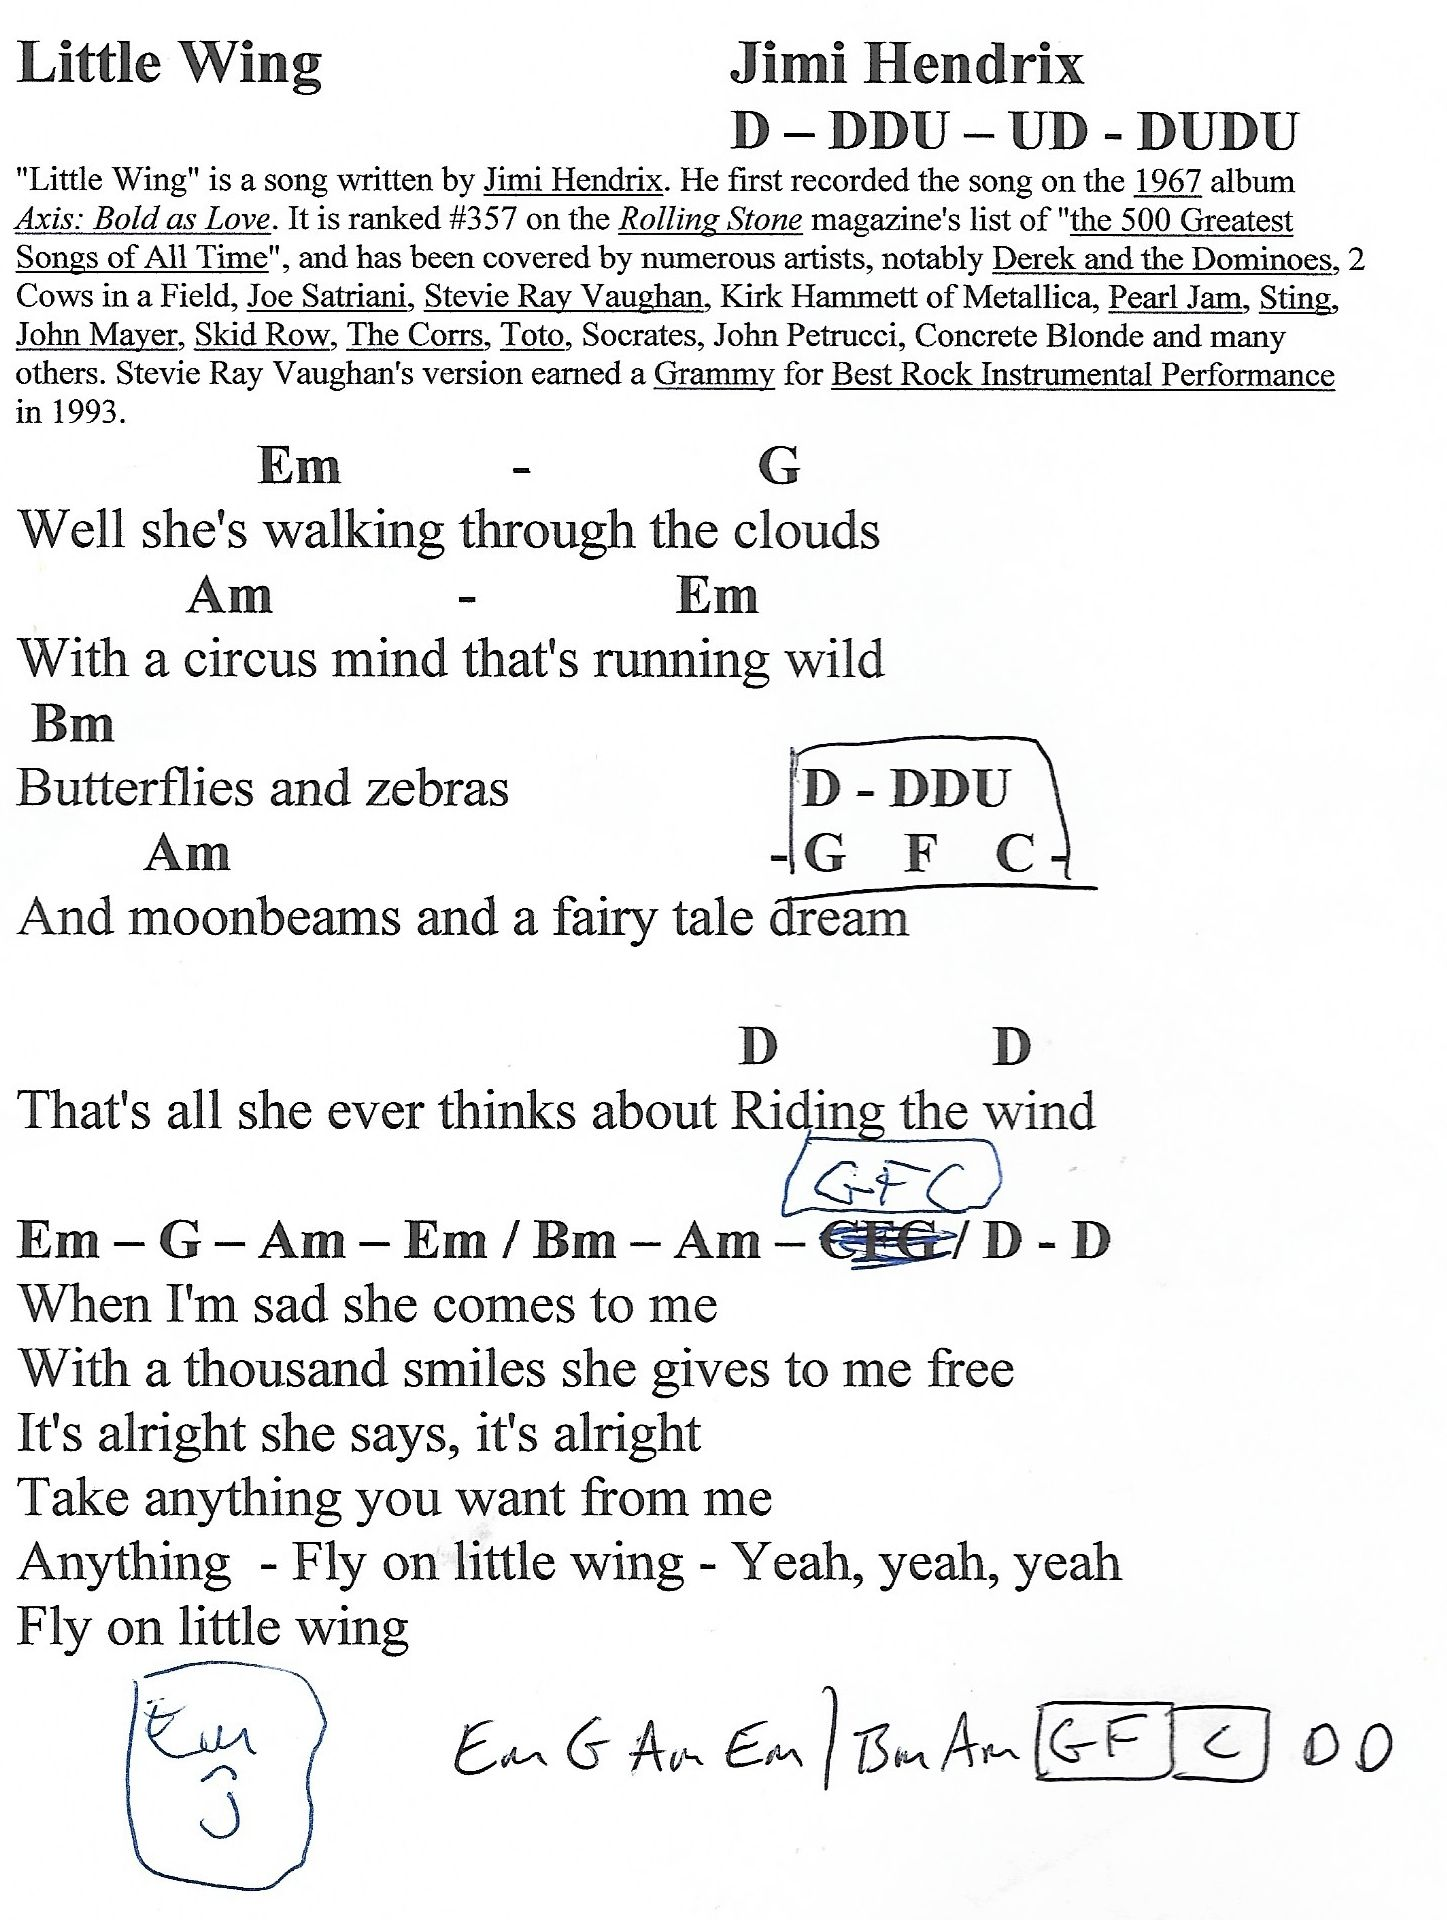 Little Wing Hendrix Guitar Chord Chart With Lyrics Httpwww